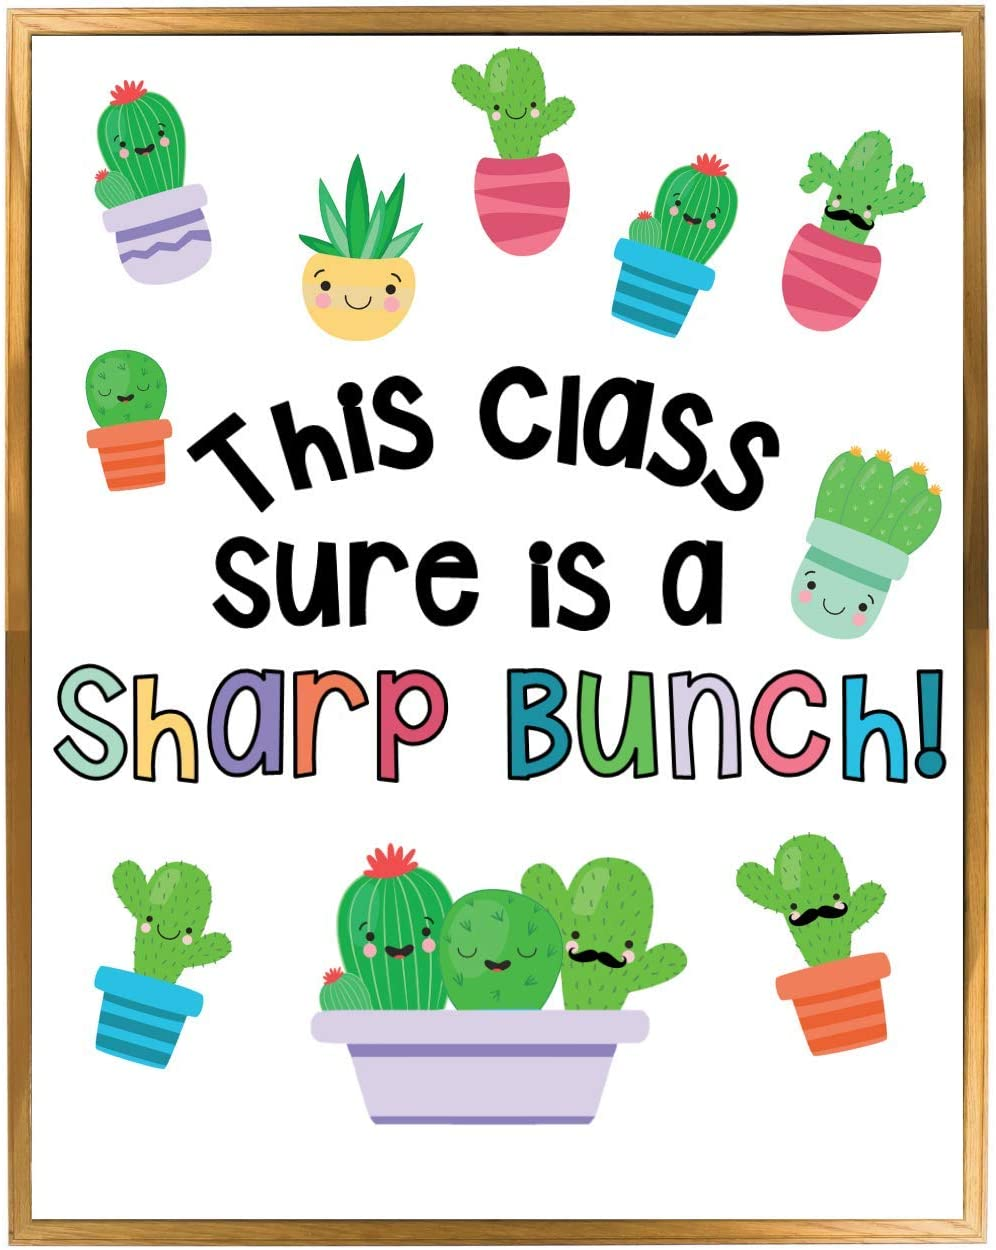 Cactus Theme Classroom Bulletin Board Decoration Set, Succulent Themed Welcome Banner, Wall or Door Decor, Ready to Use, Huge Time Saver for Teachers, Colorful Classroom Decorations